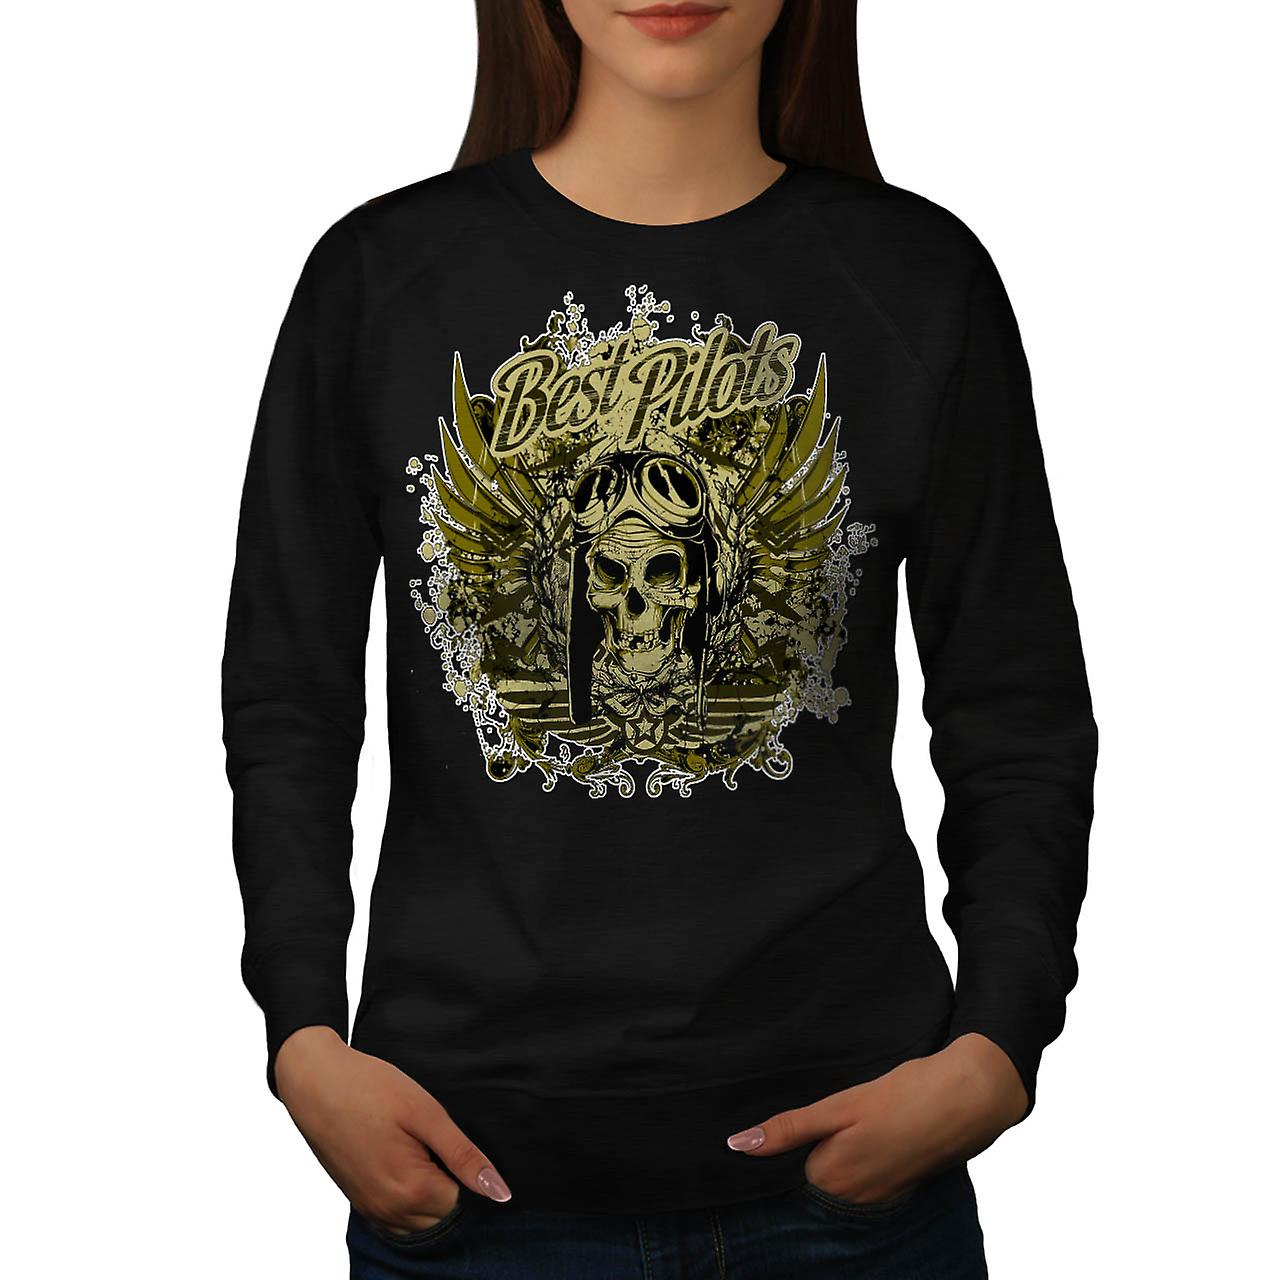 Meilleur pilote Fly Plane vol enfer femme Black Sweatshirt | Wellcoda